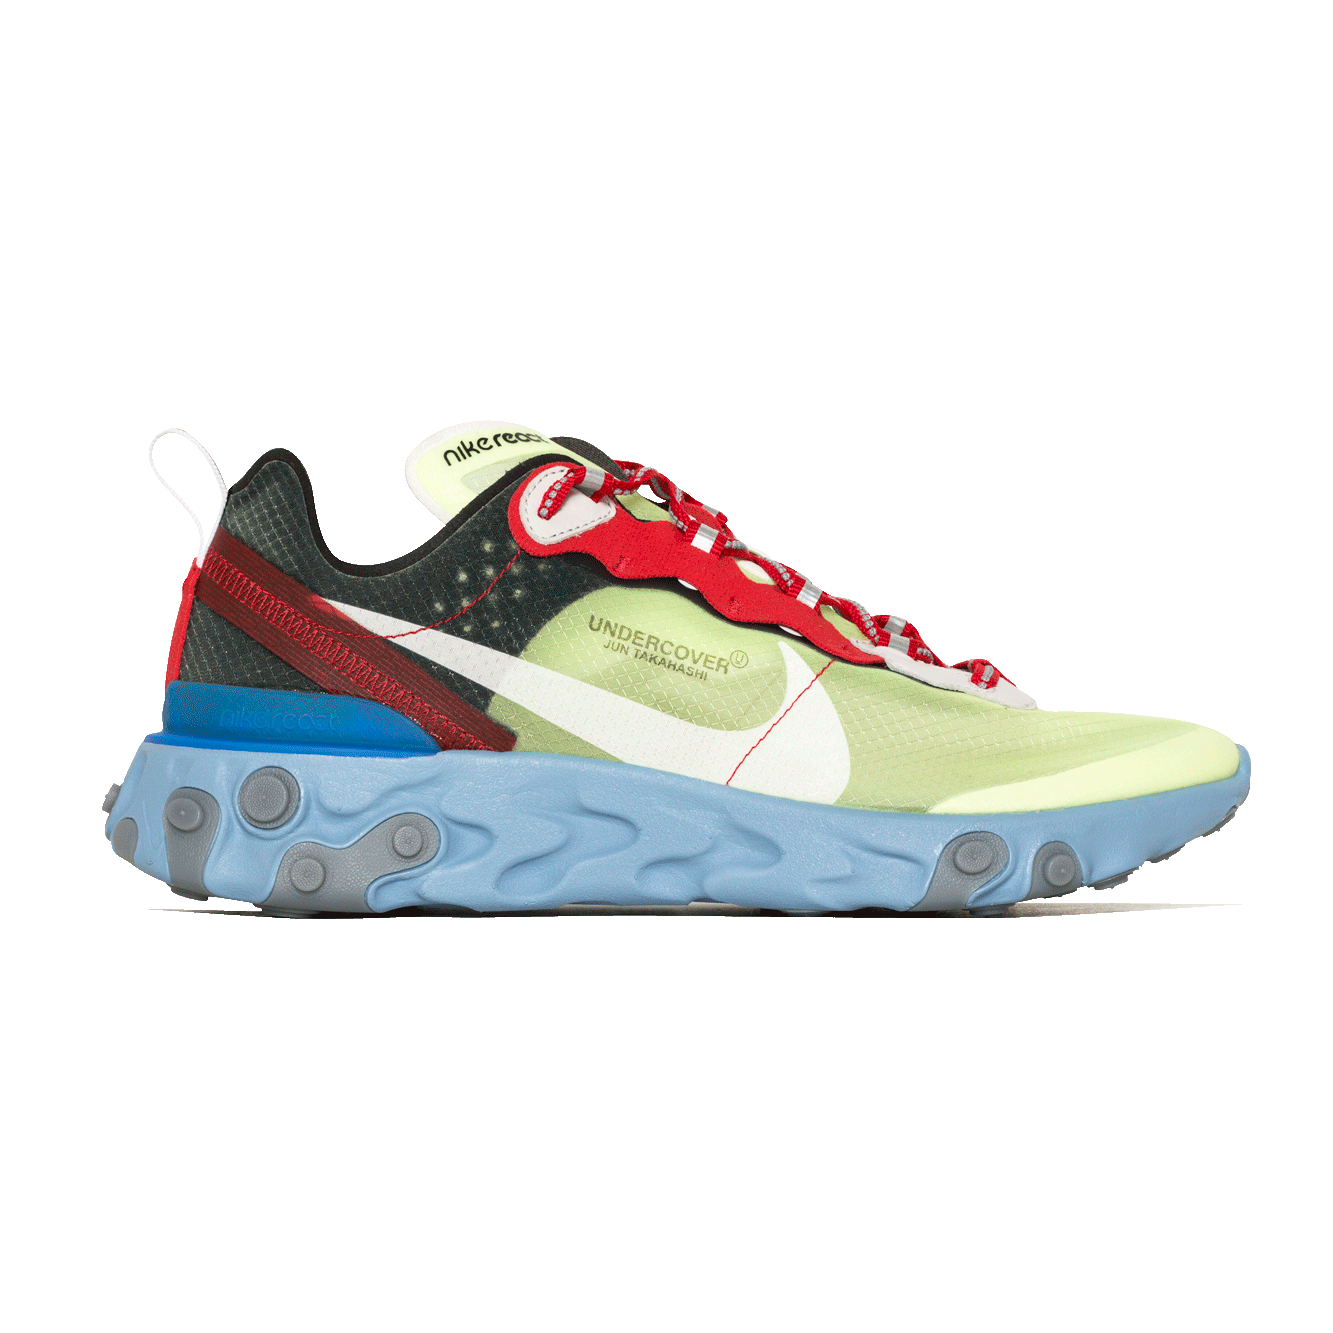 online store 82850 22501 NIKE X UNDERCOVER REACT ELEMENT 87 VOLT UNIVERSITY RED-BLACK-WHITE (BQ ( BQ2718-700)   KIX-FILES